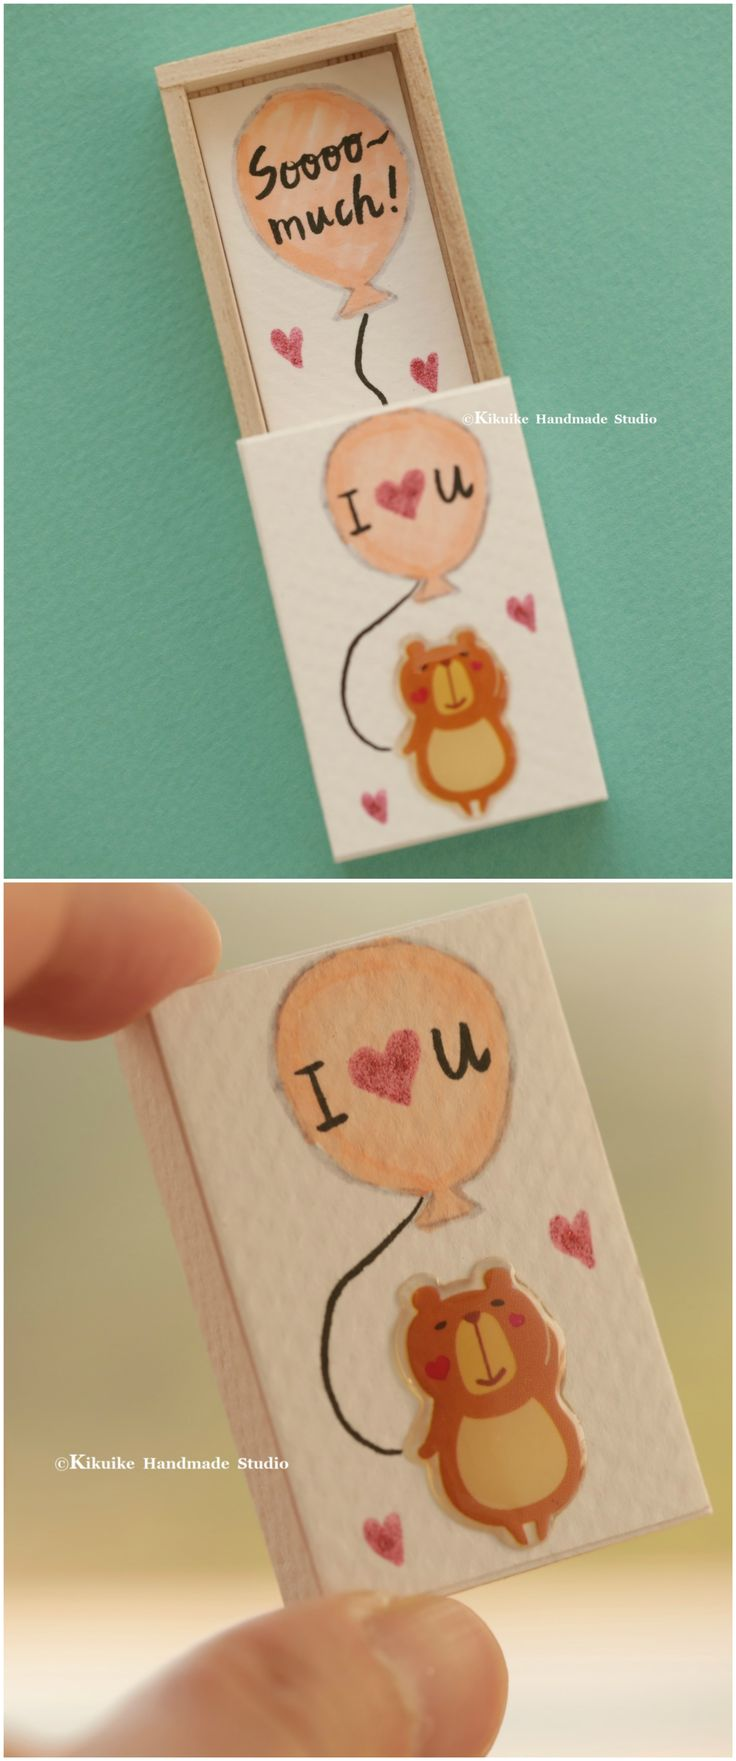 I LOVE YOU sooooo much,Miniatures matchbox card,Valentine's Gift,cheer up box,Gift for her/him,Girlfriend gift,boyfriend gift,matchbox art, birthday card, love card and funny card ideas #bear #balloon # cute #handpainted #unique #handmade #messagecard  #dollsandminiatures  #homedecor #personalizedgift #custom #anniversary #handmadebear  #toy #lovecard #テディベア #christmas #kikuikestudio #Longdistancegift  #valentineday #matchboxmessage